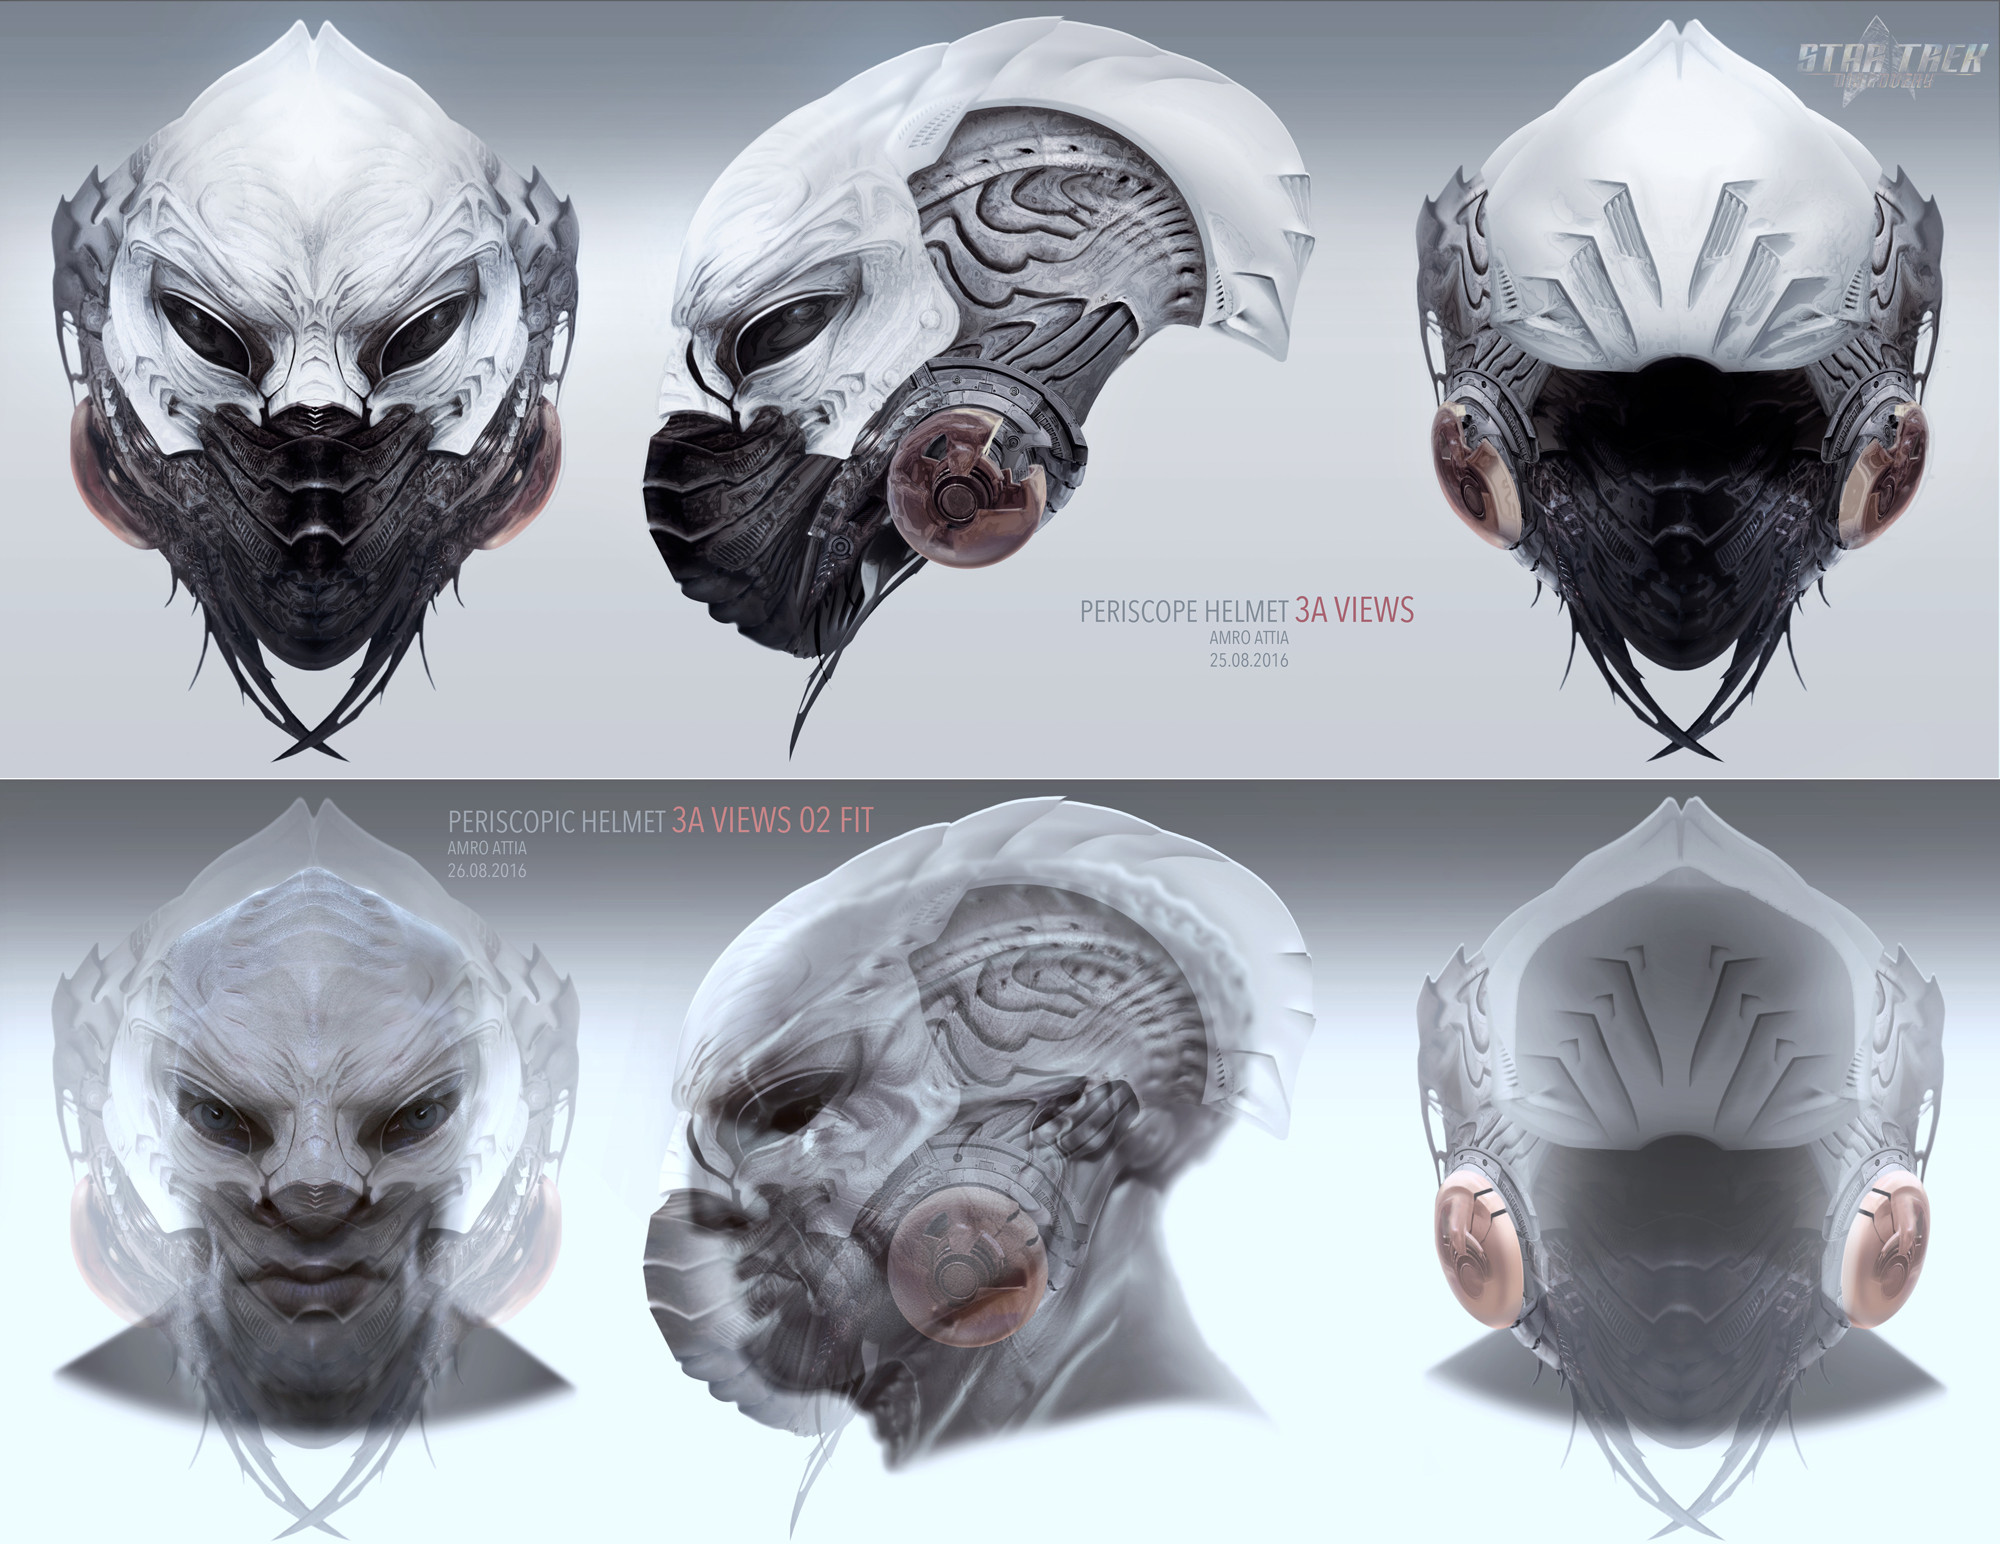 Periscopic helmet concept for Star Trek: Discovery